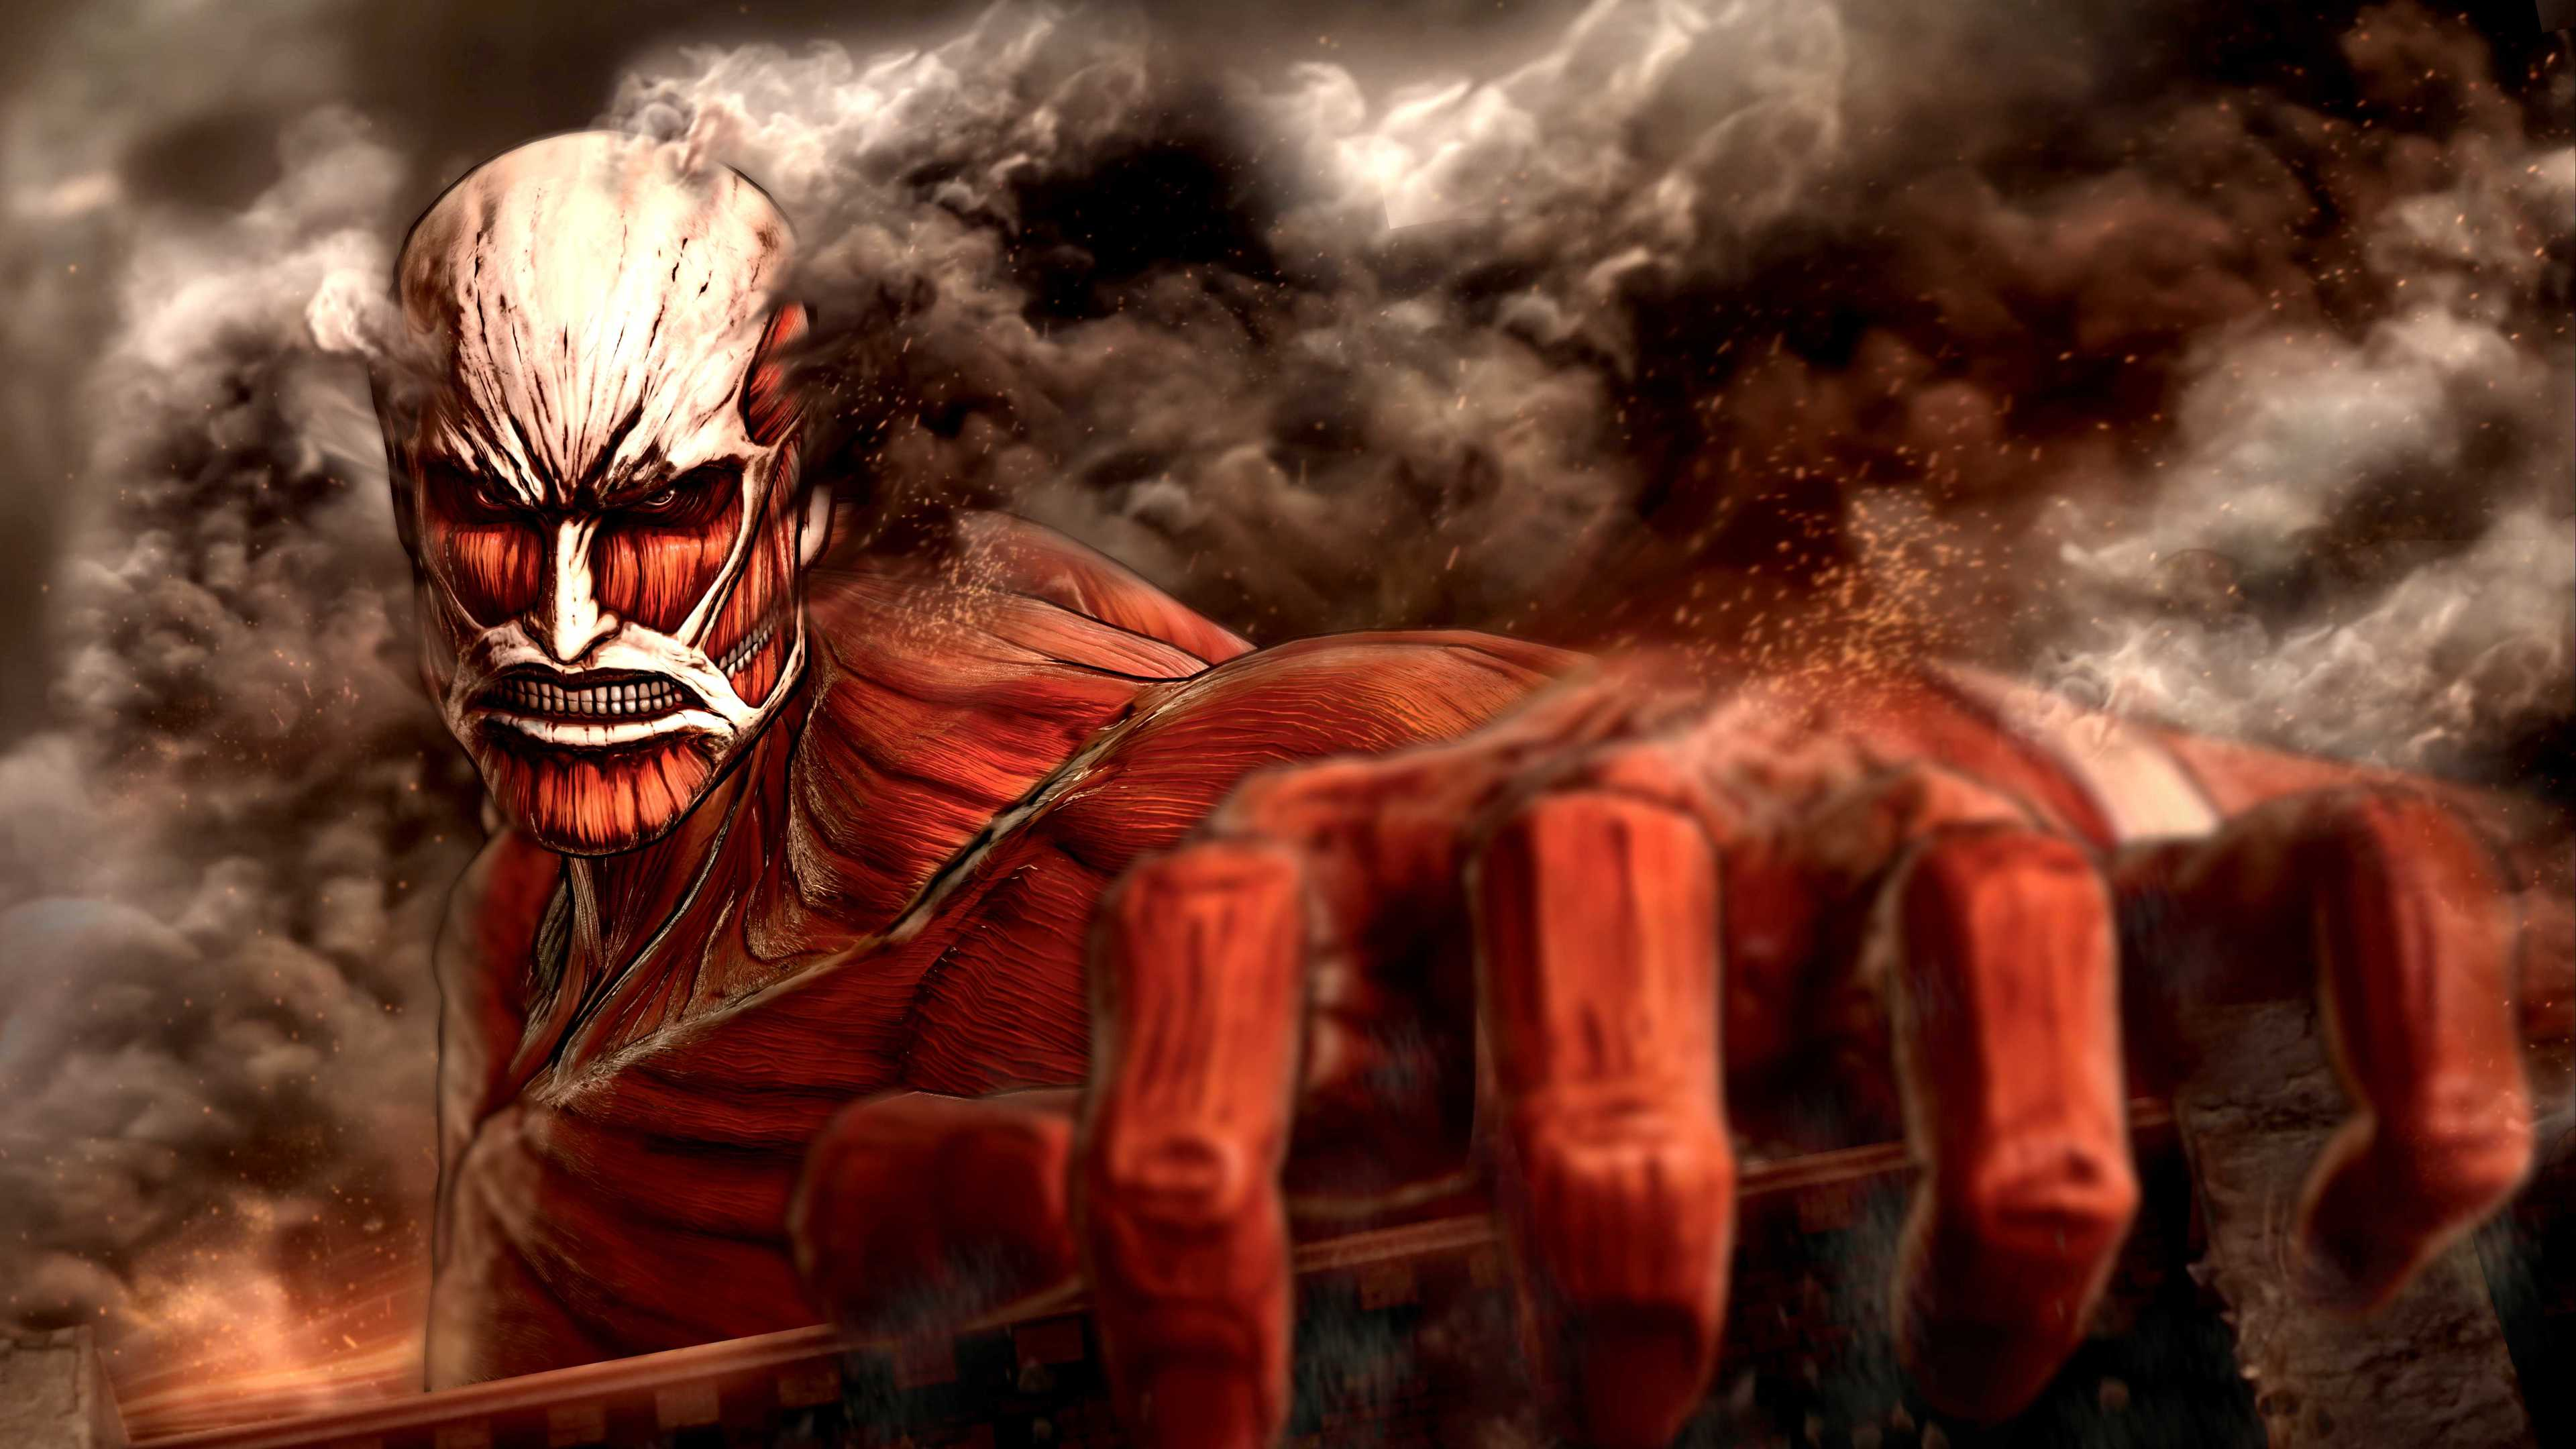 attack on titan 1541974147 - Attack On Titan - hd-wallpapers, attack on titan wallpapers, anime wallpapers, 4k-wallpapers